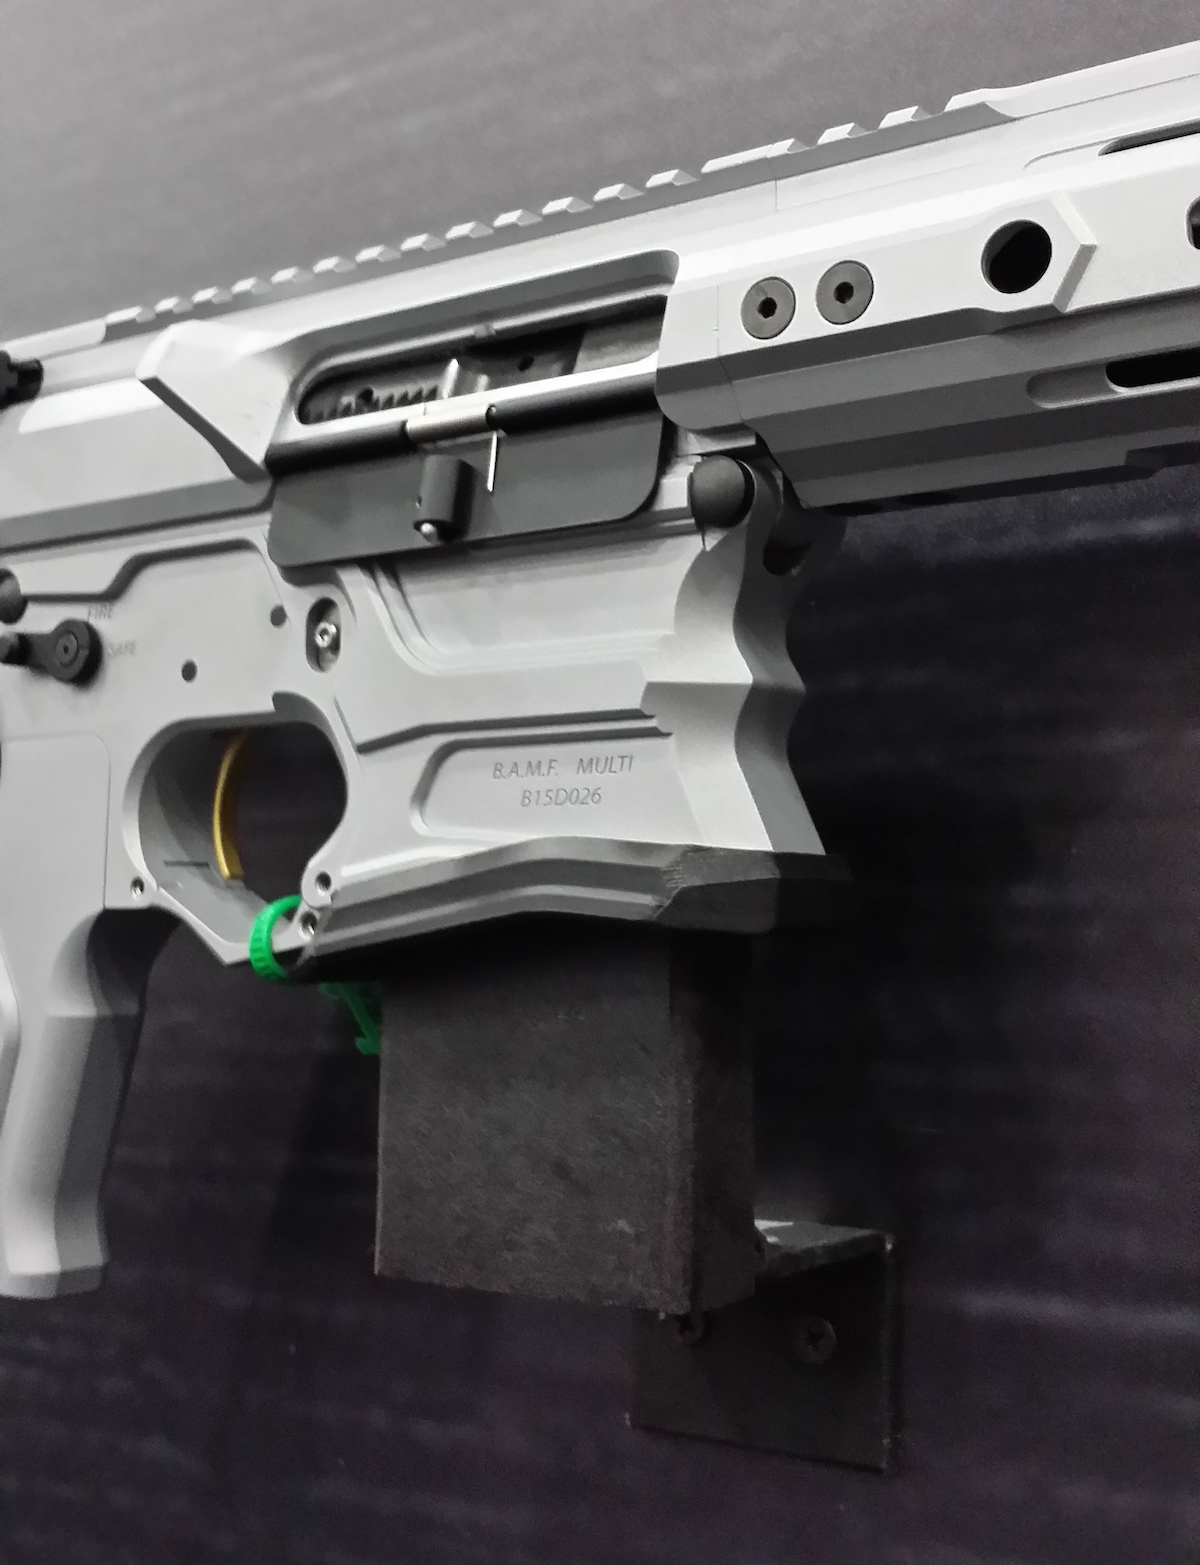 The Evolve is equipped with an American Trigger Corporation AR Gold Trigger.